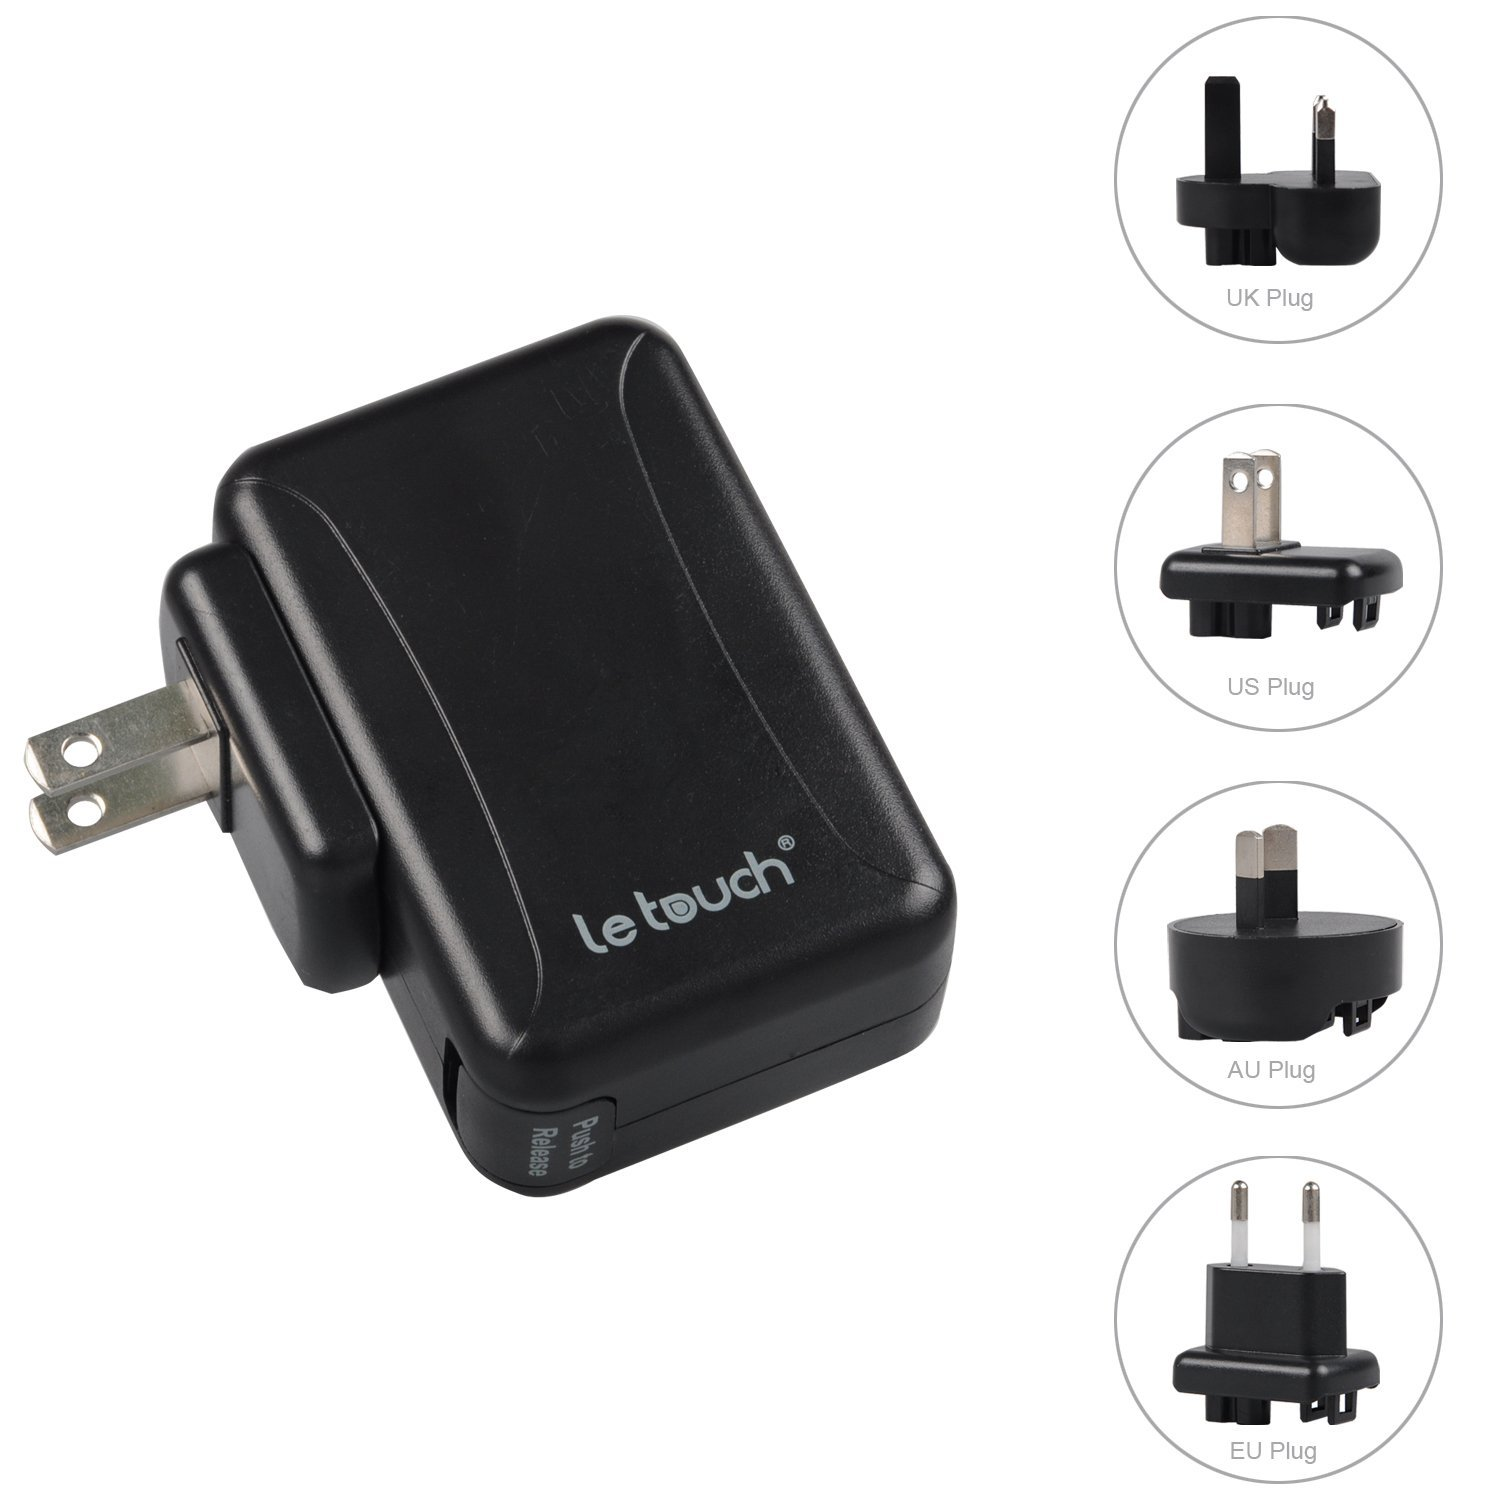 [Upgraded Version & All Smart Port] LETOUCH 24W (5V 4.8A) 4-Port USB Wall Charger Travel Kit With Interchangeable Plugs (US, UK, EU, AU); Multi port USB Travel Charger With Smart IC For iPhone / iPad / iPod & Android Windows Phone / Tablet, USB Charger Devices etc (Black)